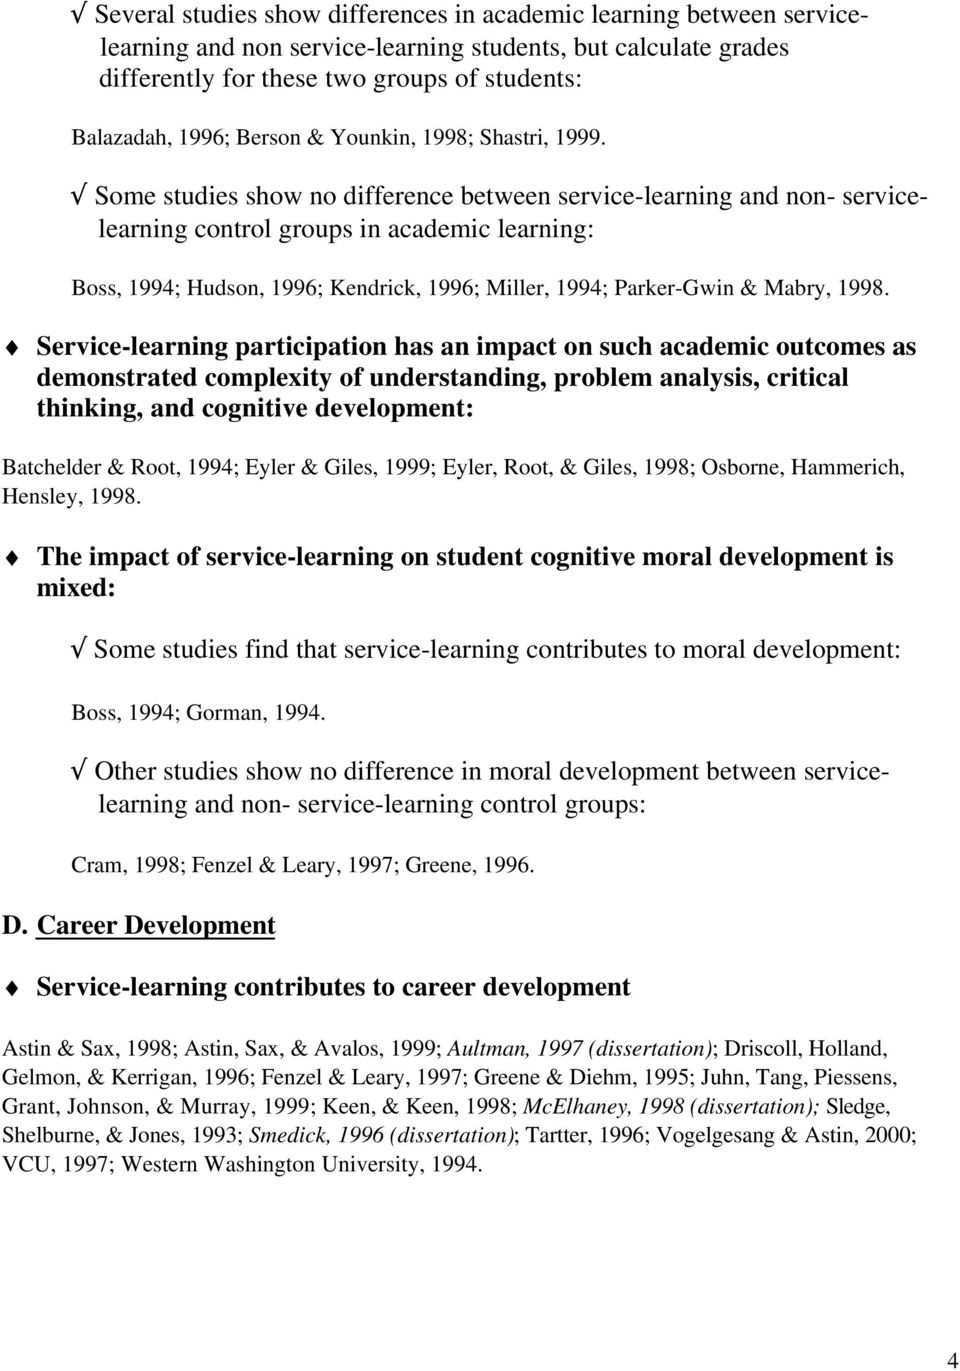 Some studies show no difference between service-learning and non- servicelearning control groups in academic learning: Boss, 1994; Hudson, 1996; Kendrick, 1996; Miller, 1994; Parker-Gwin & Mabry,